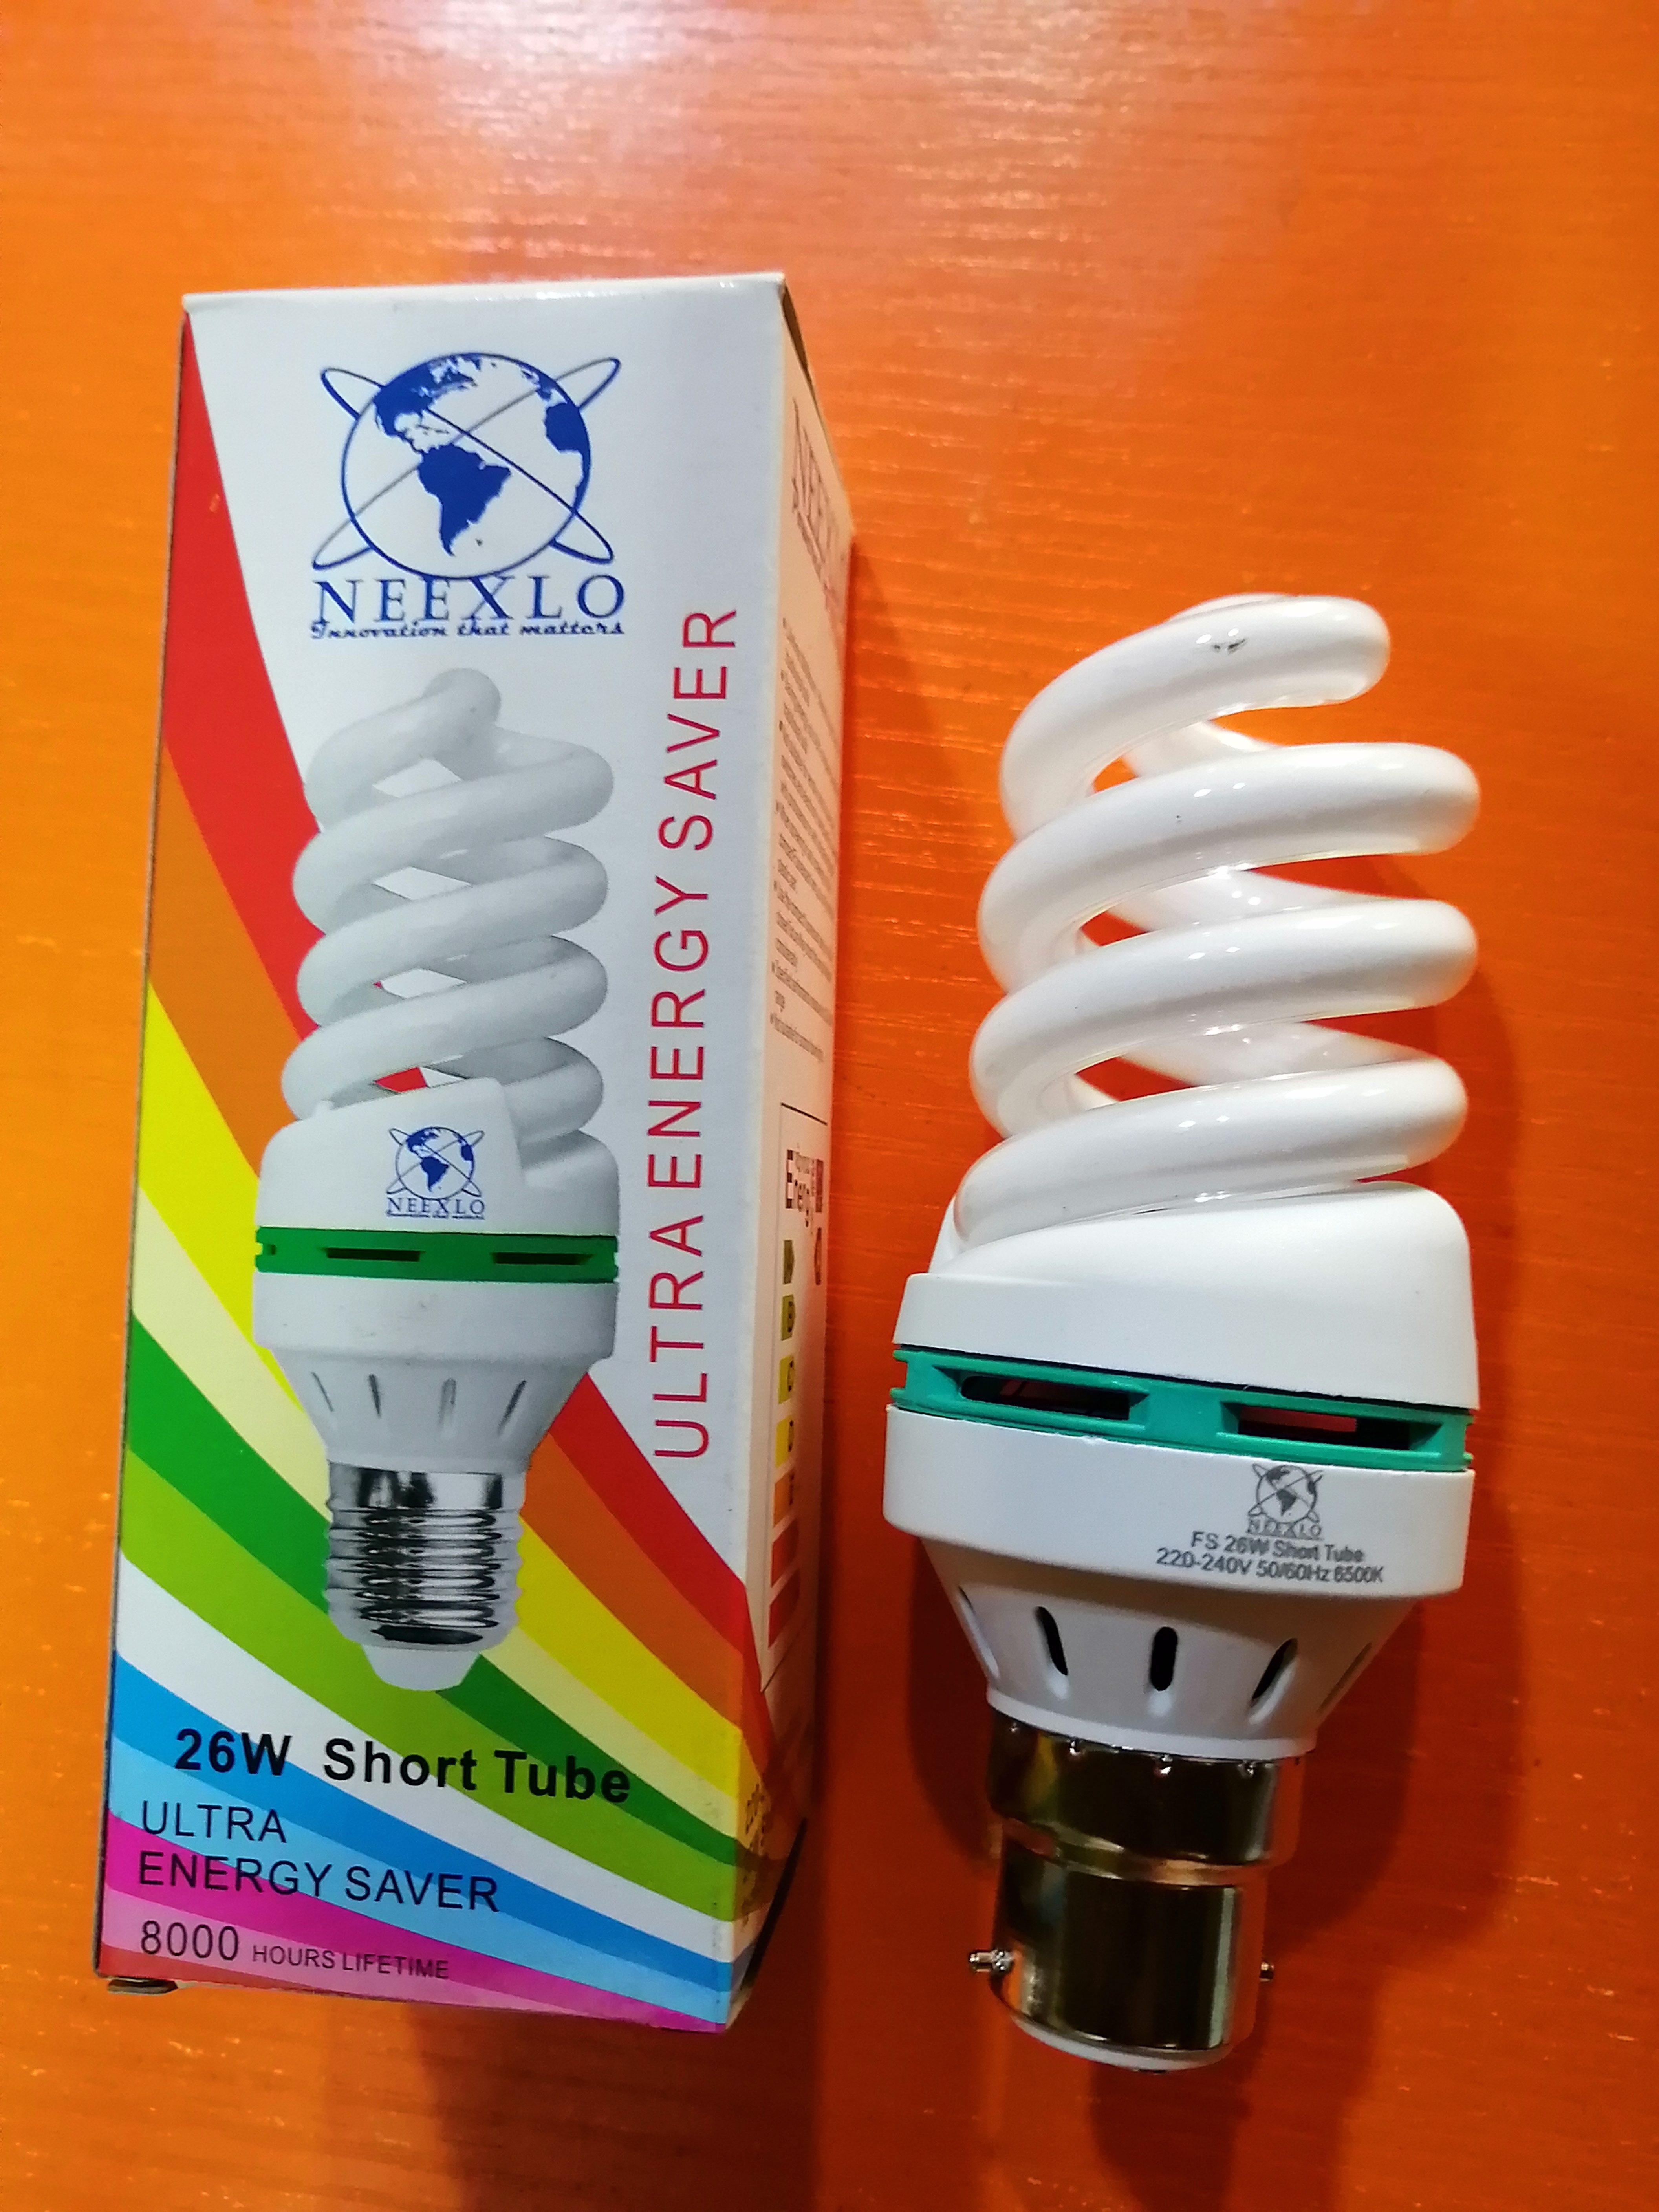 26w energy saving bulb